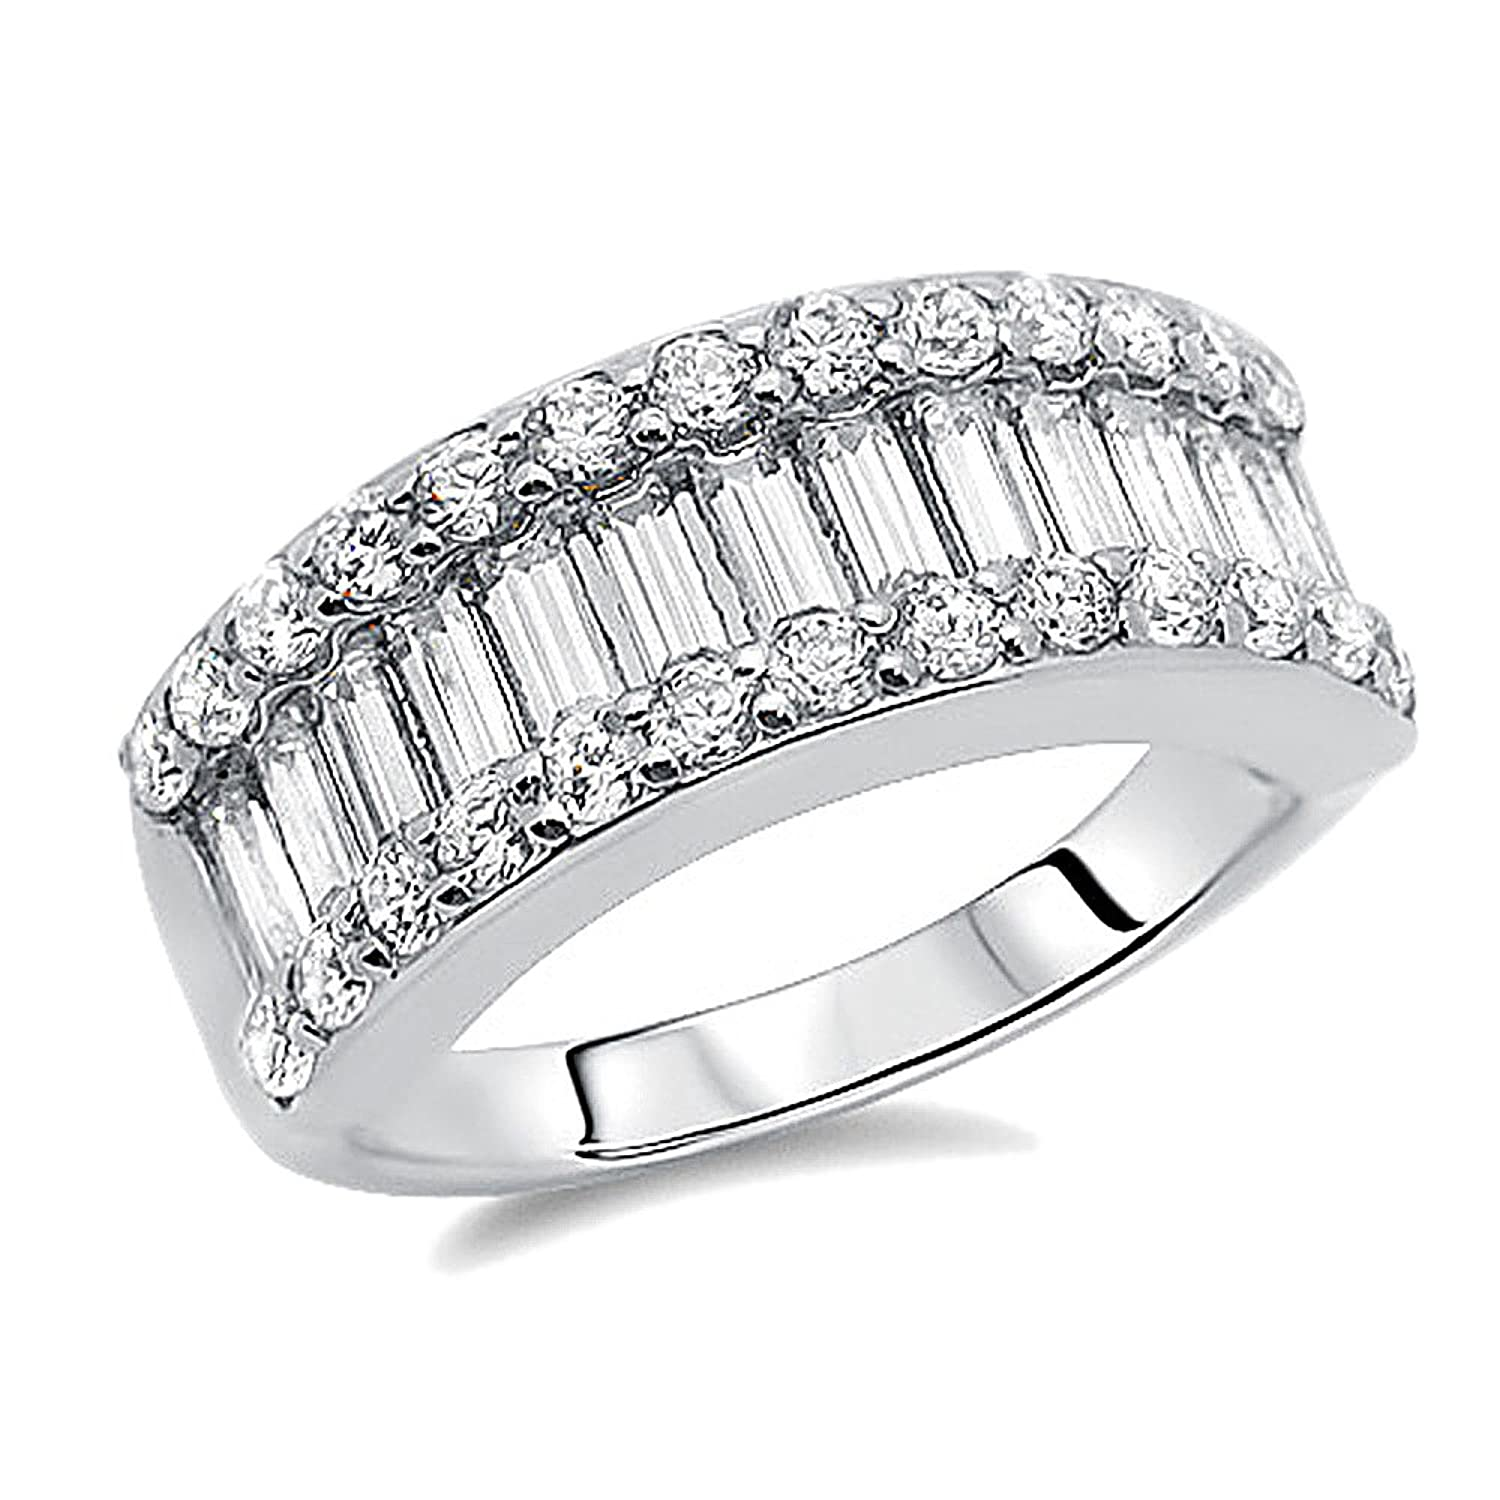 engagement bands rng band diamond ladies white gold real eternity ring baguette